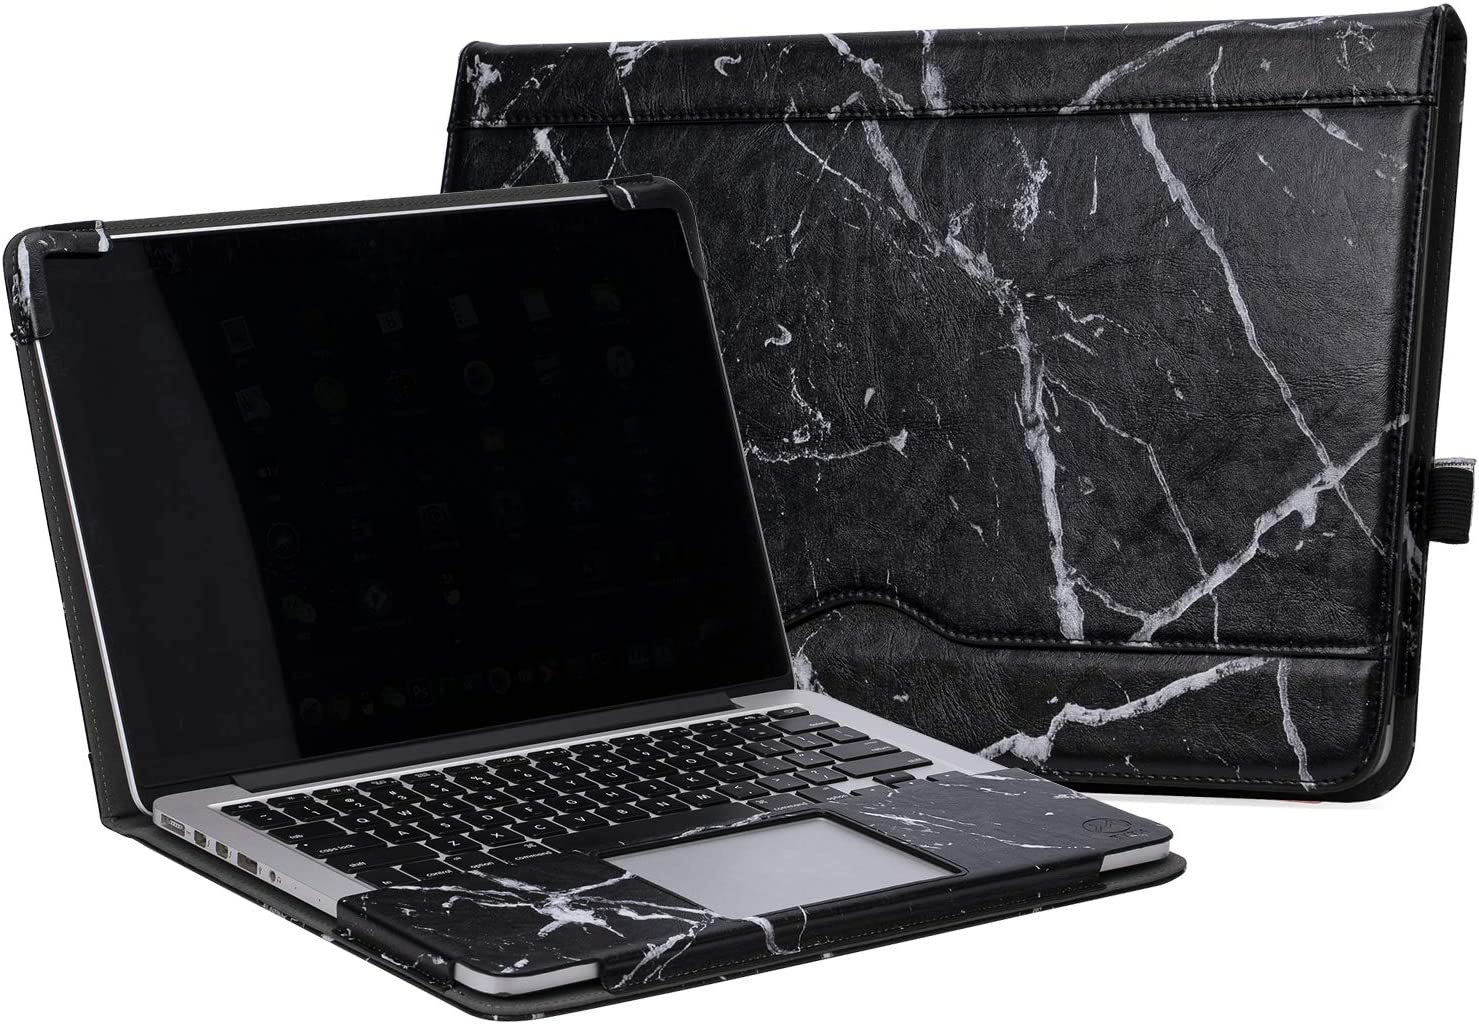 "TYTX MacBook Air Leather Case 13 Inch 2020 2019 2018 (A2179 A1932) Laptop Sleeve Protective Folio Book Cover (New MacBook Air 13"", Black Marble)"